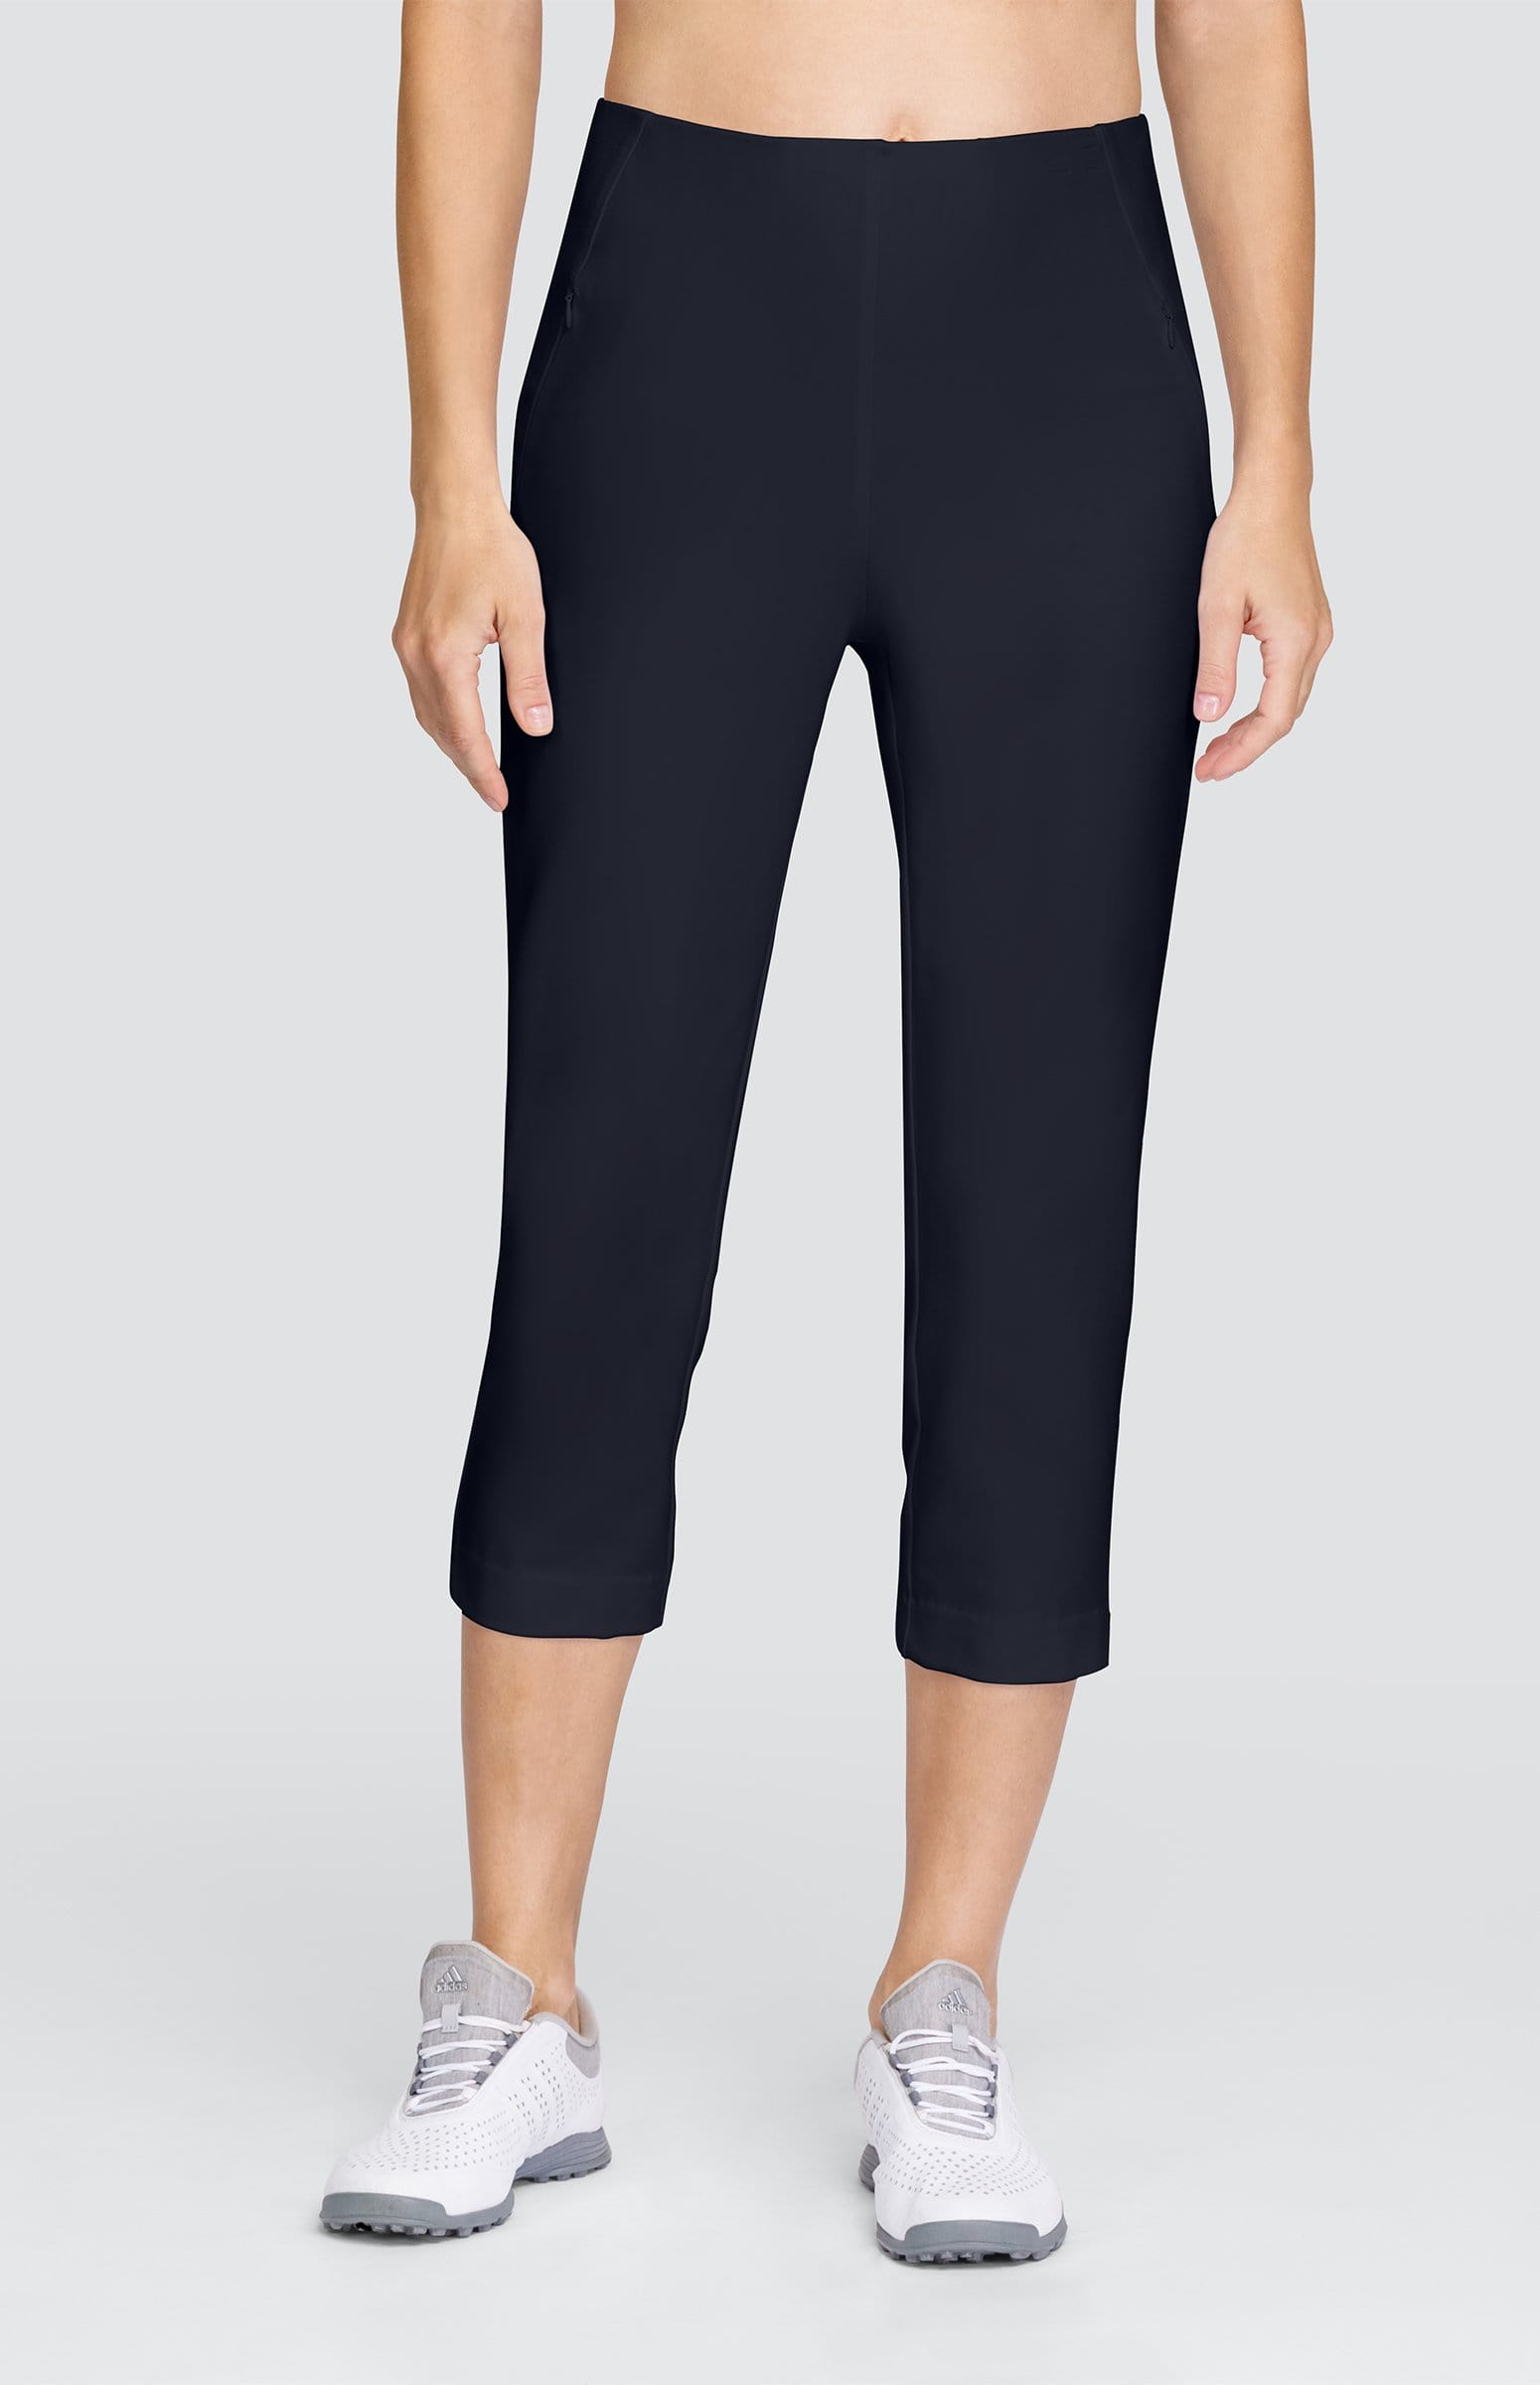 Allure Capri - Onyx Black